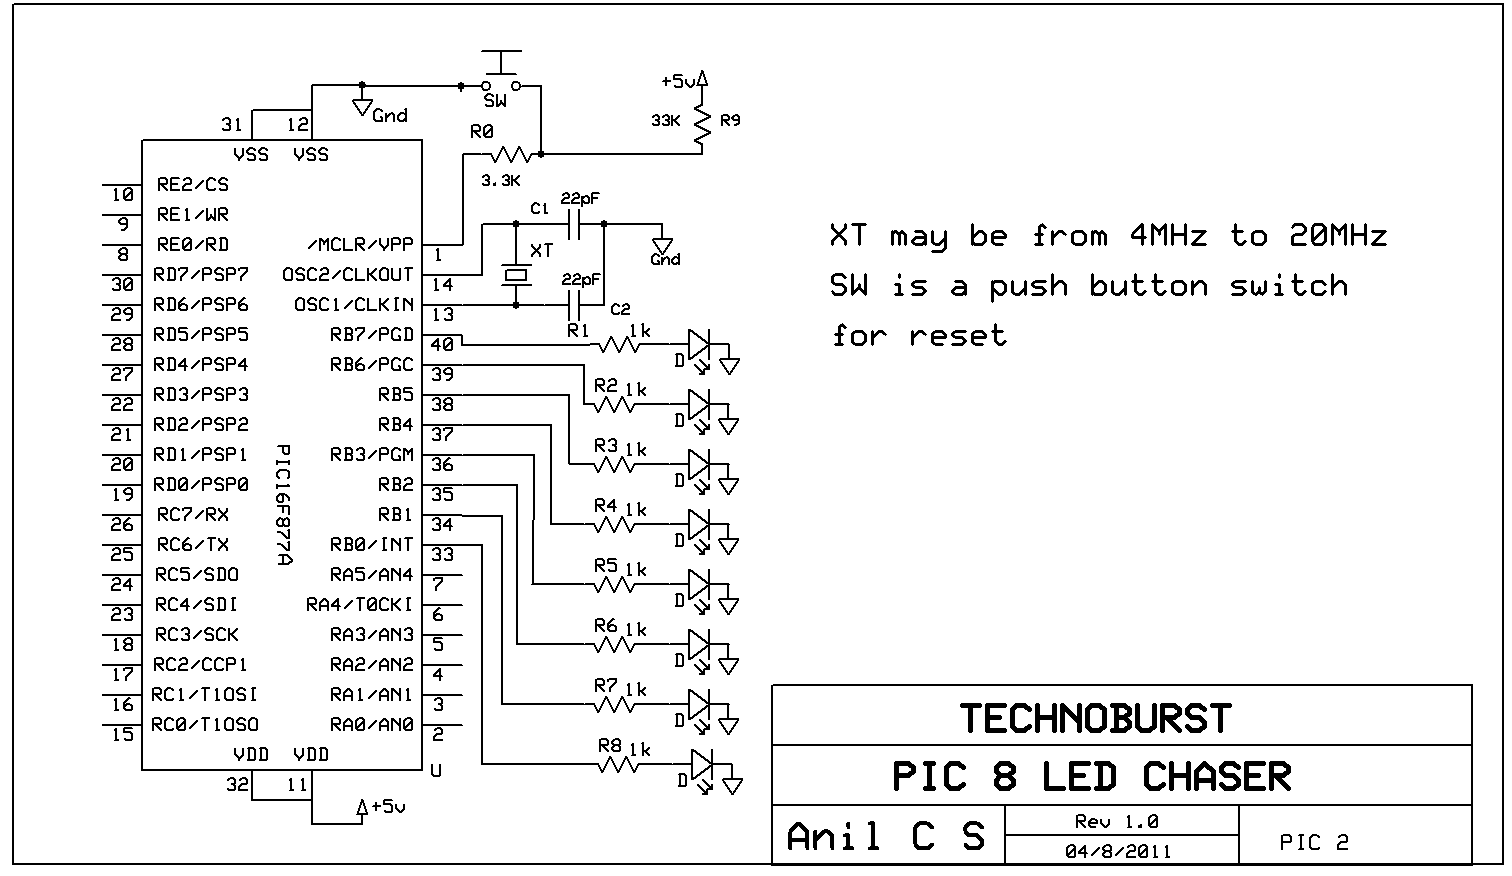 8 Led Chaser Circuit Diagram Free Download Wiring Diagrams Schematics Pic Programs 03 Technoburst Rain Detector 24